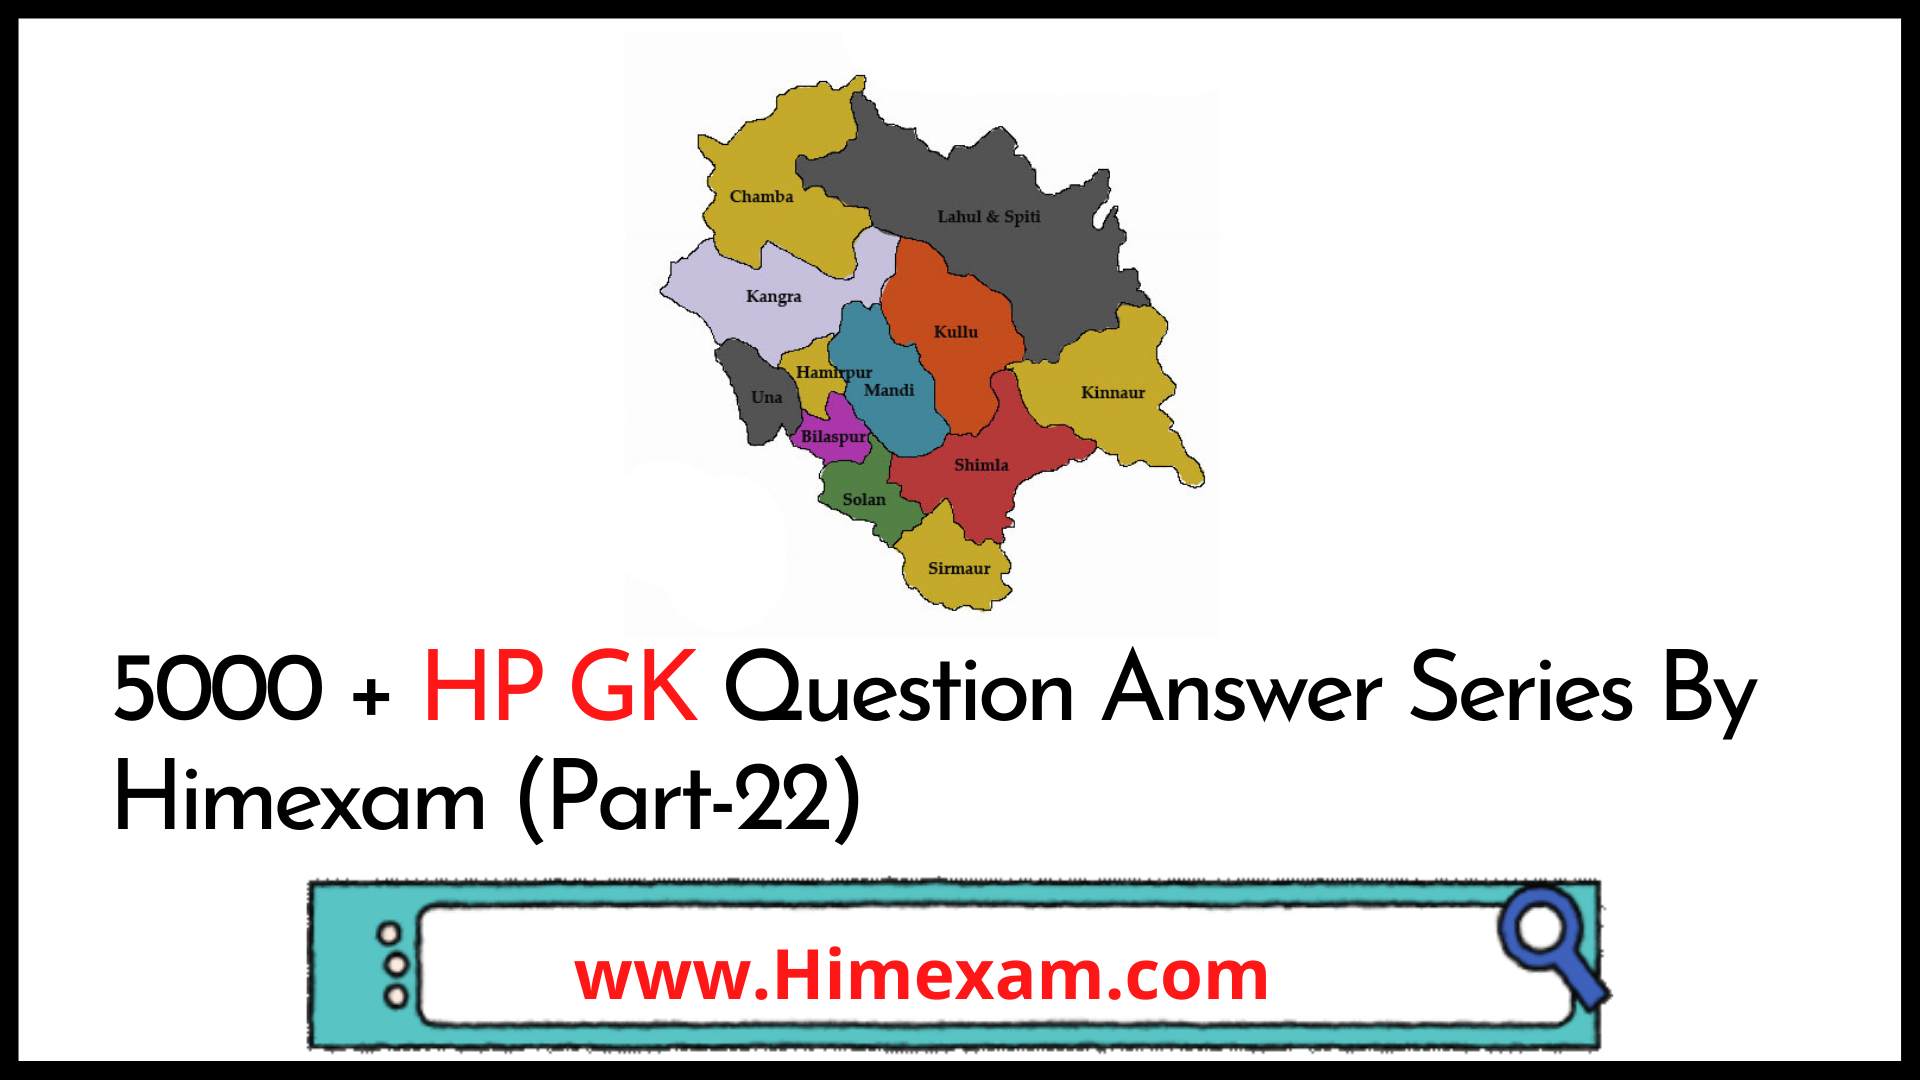 5000 + HP GK Question Answer Series By Himexam (Part-22)